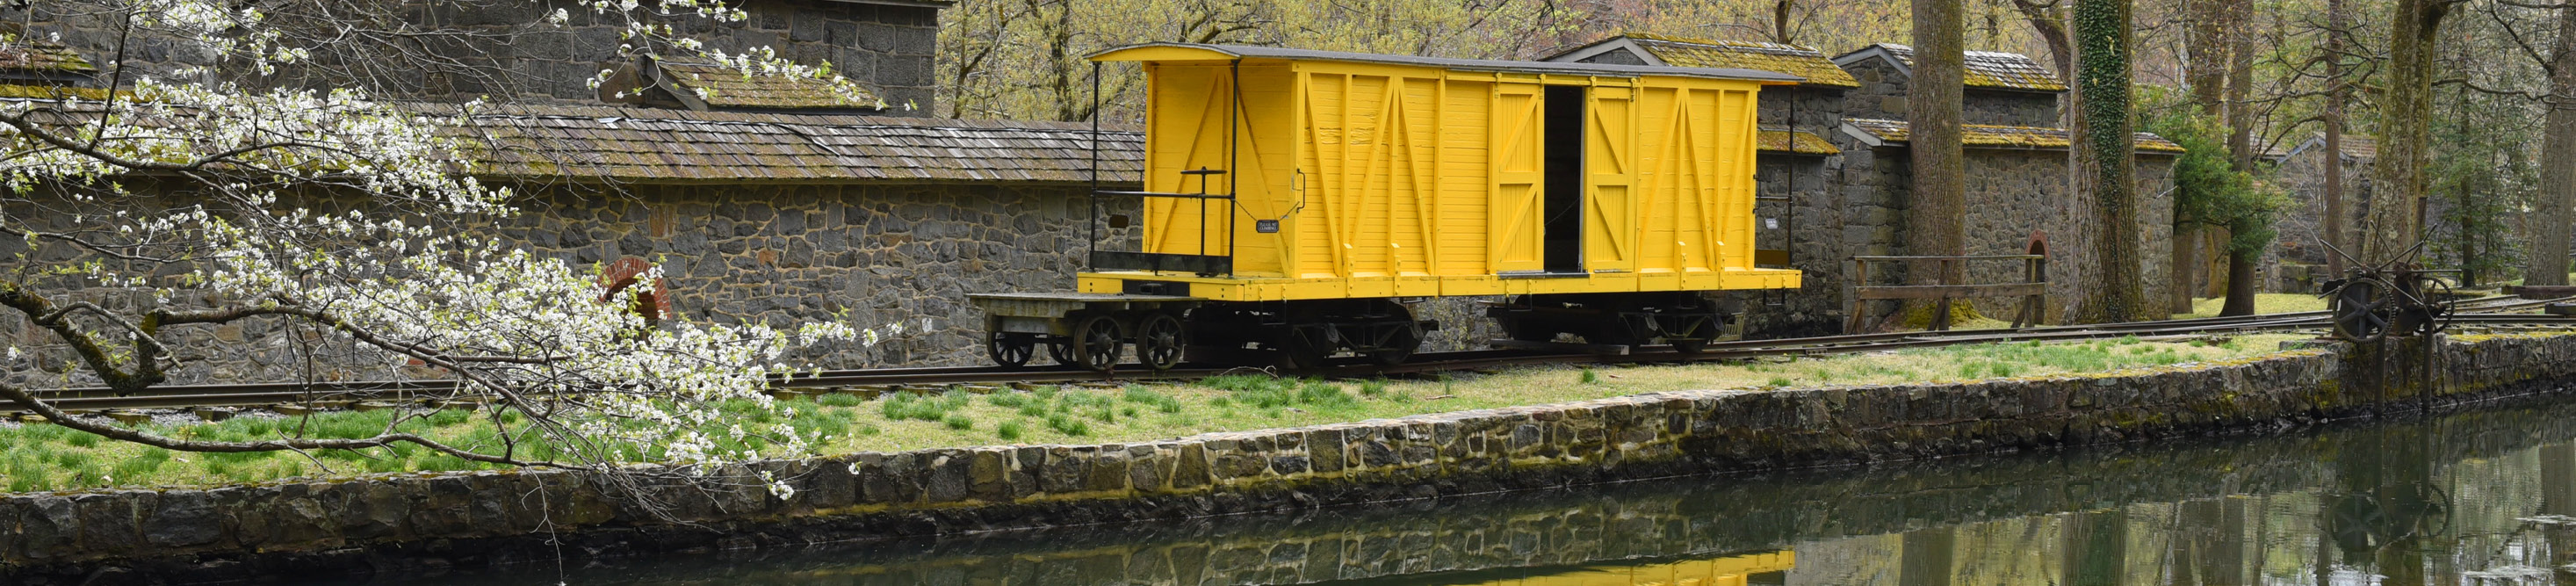 The Boxcar and Millrace at Hagley Museum and Library